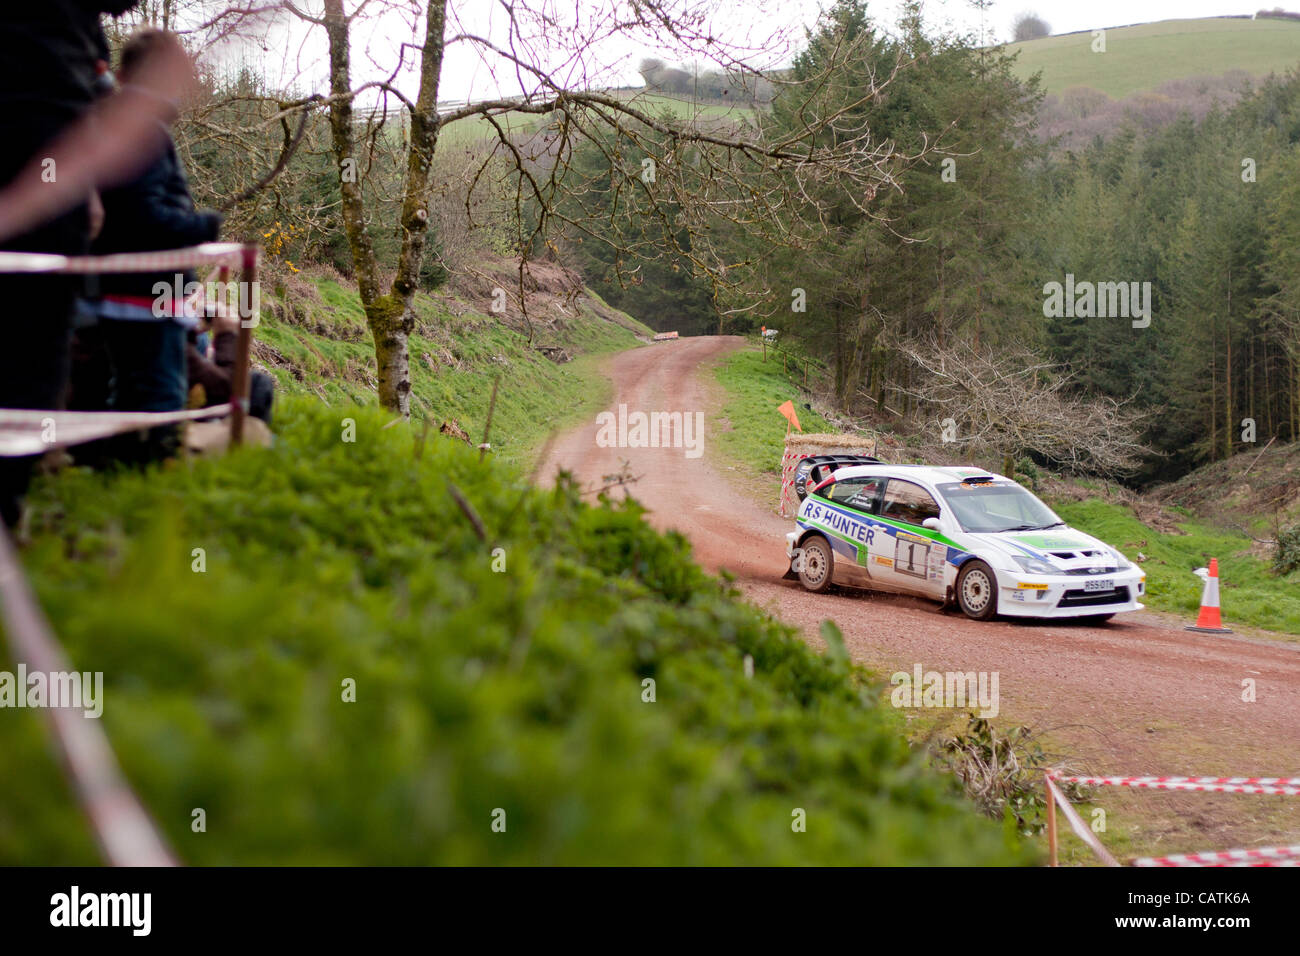 Somerset, UK, 21st April, 2012. Spectators look on as Hugh Hunter competes at the Chargot Woods stage of the 34th - Stock Image